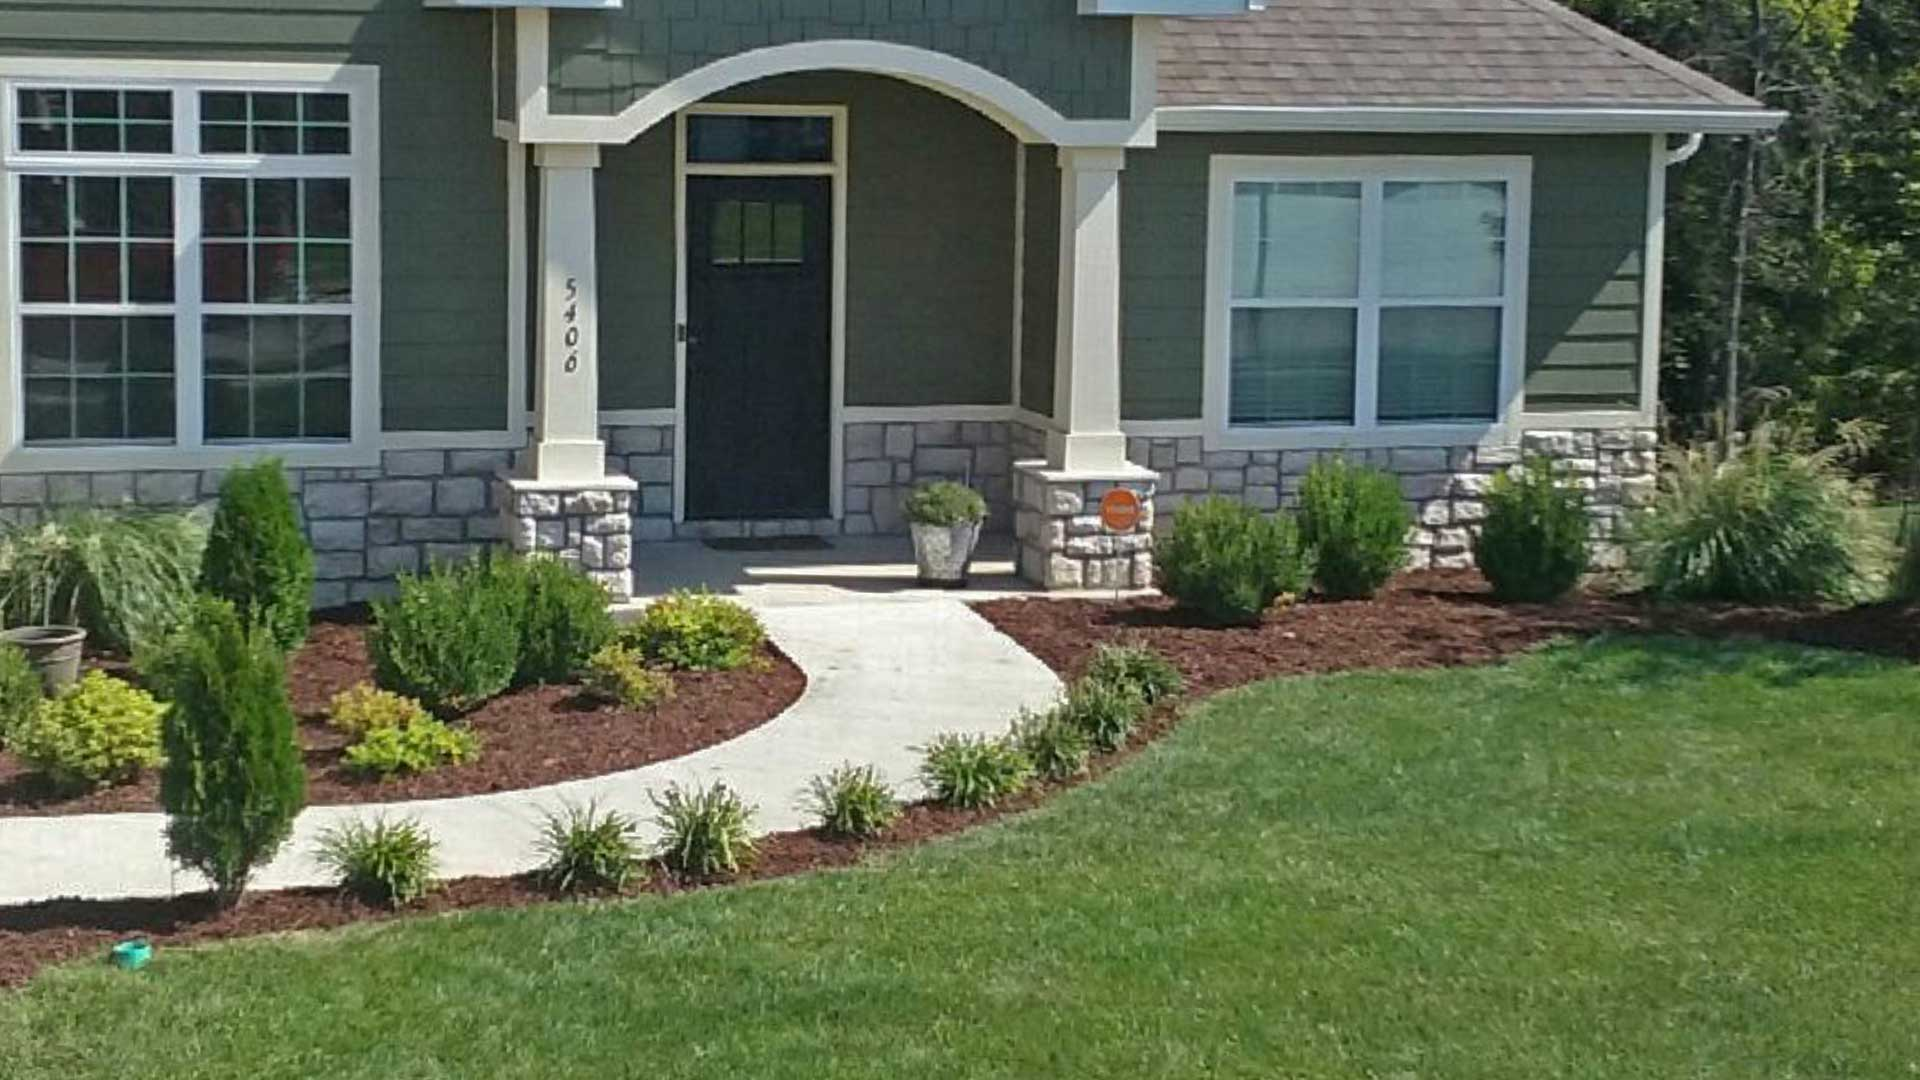 Columbia, MO Home with New landscaping and lawn maintenance by McVey Mowing.